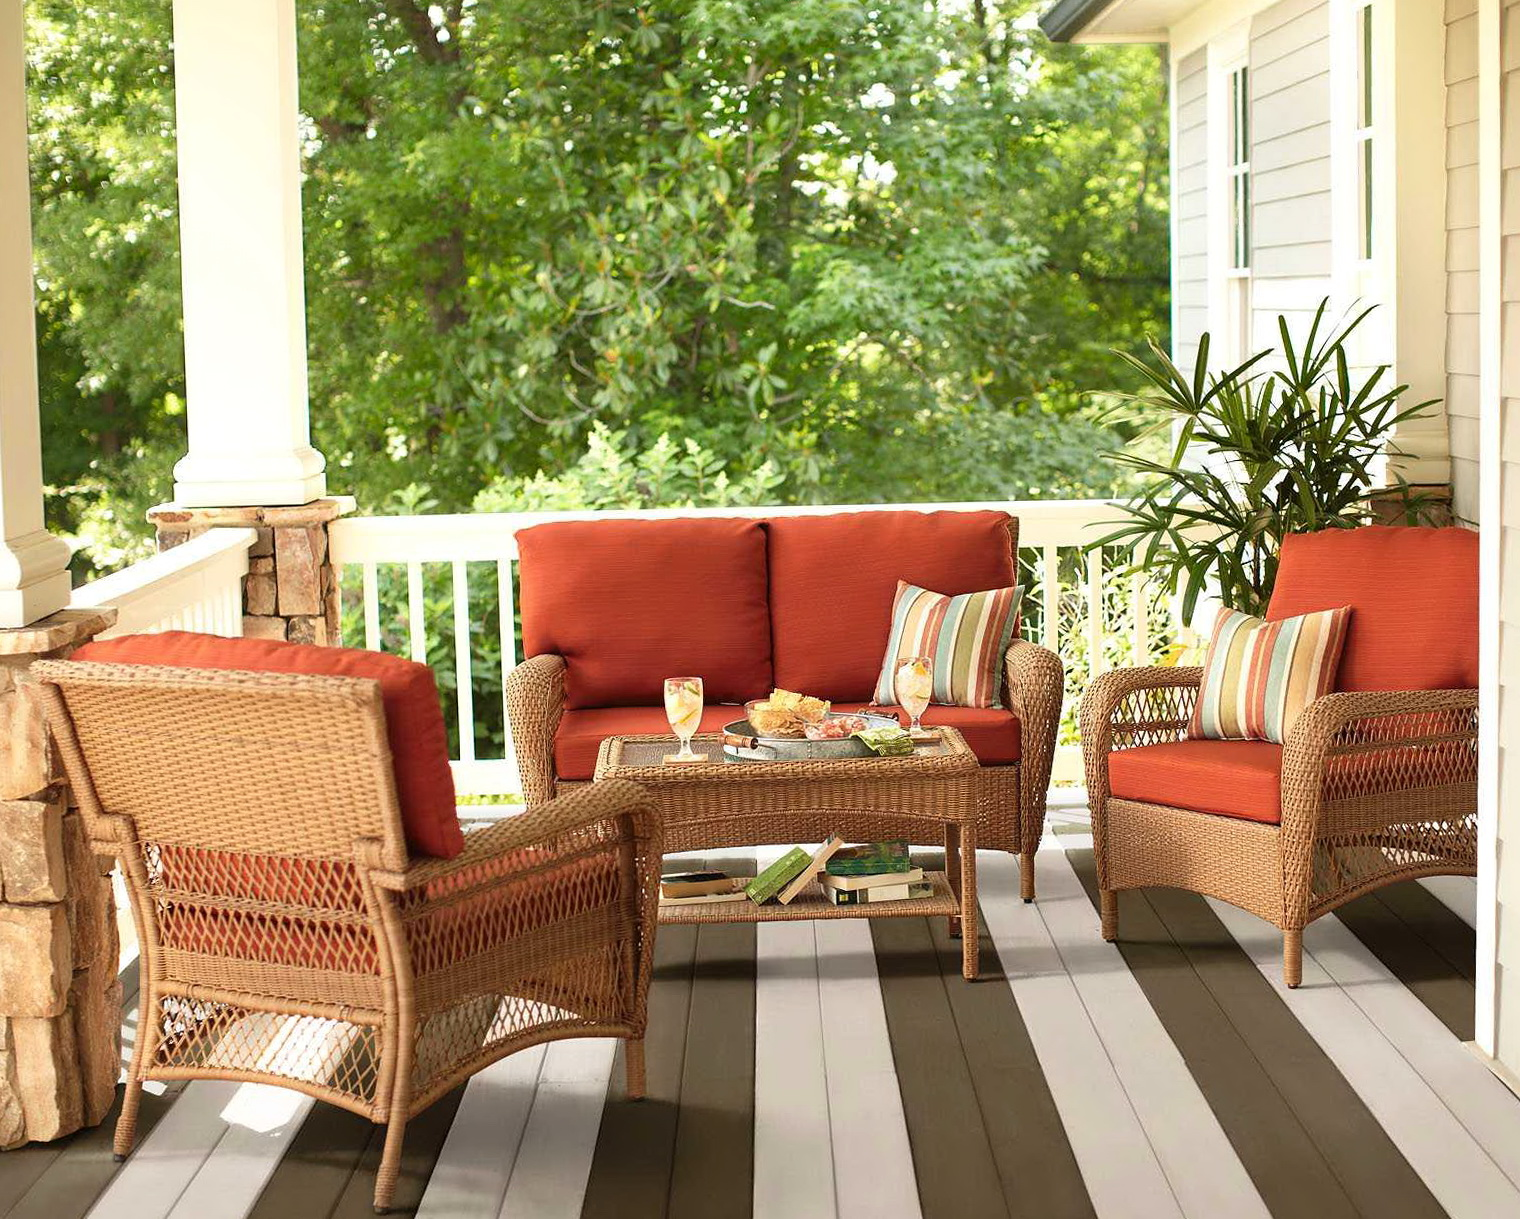 Home Depot Deck Builder Tool Home Design Ideas